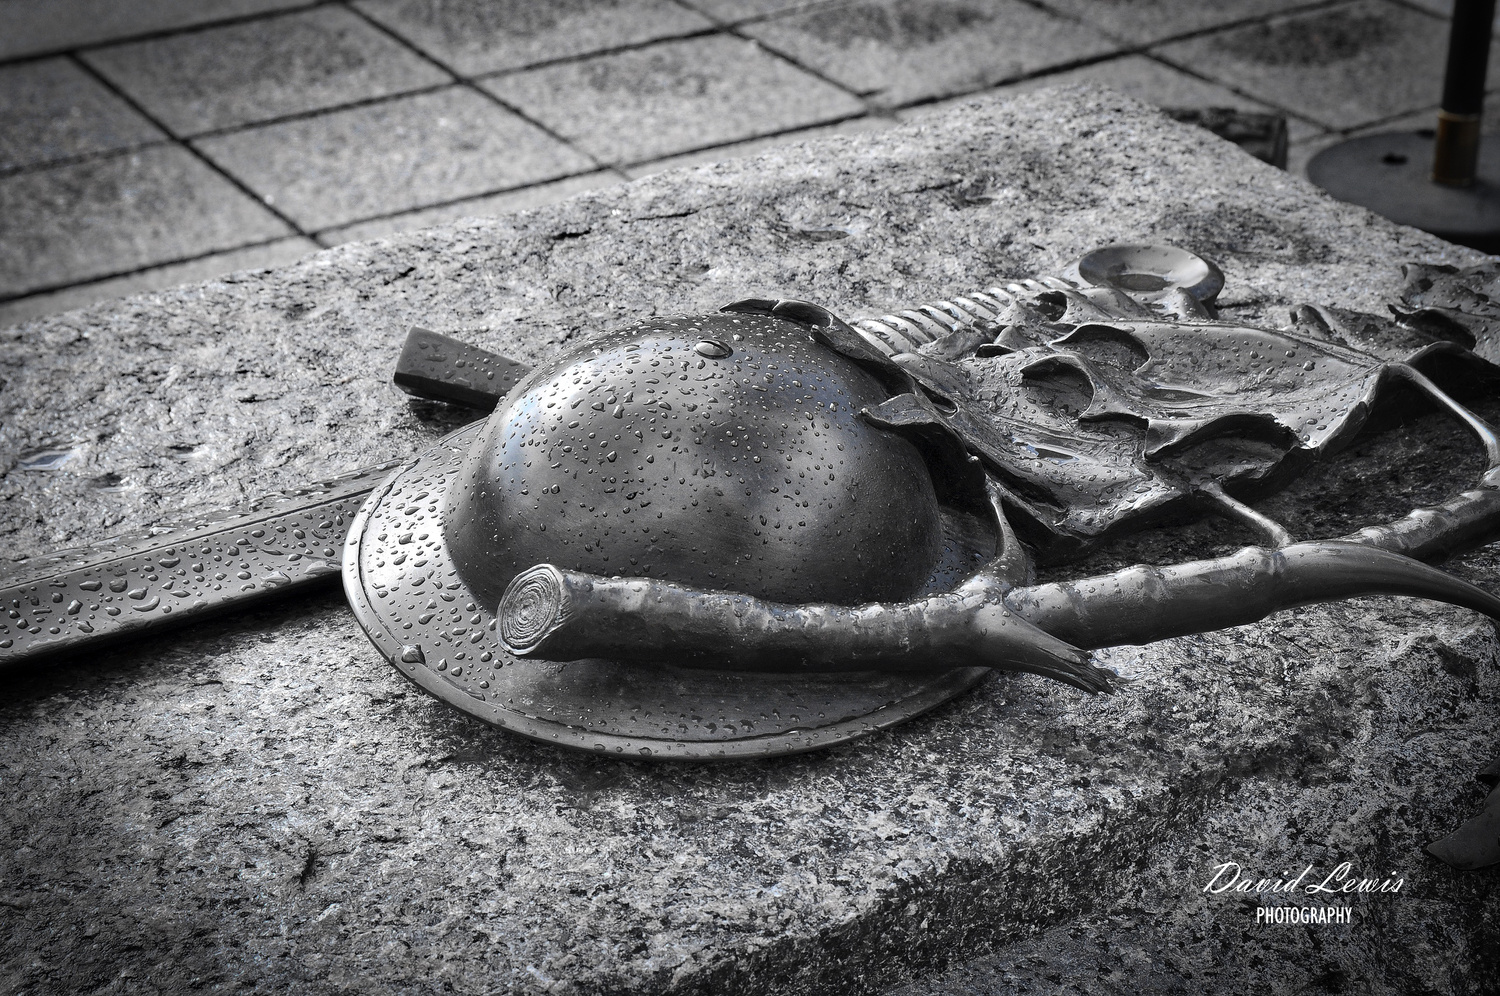 Tomb of the Unknown Soldier - Ottawa by David Lewis